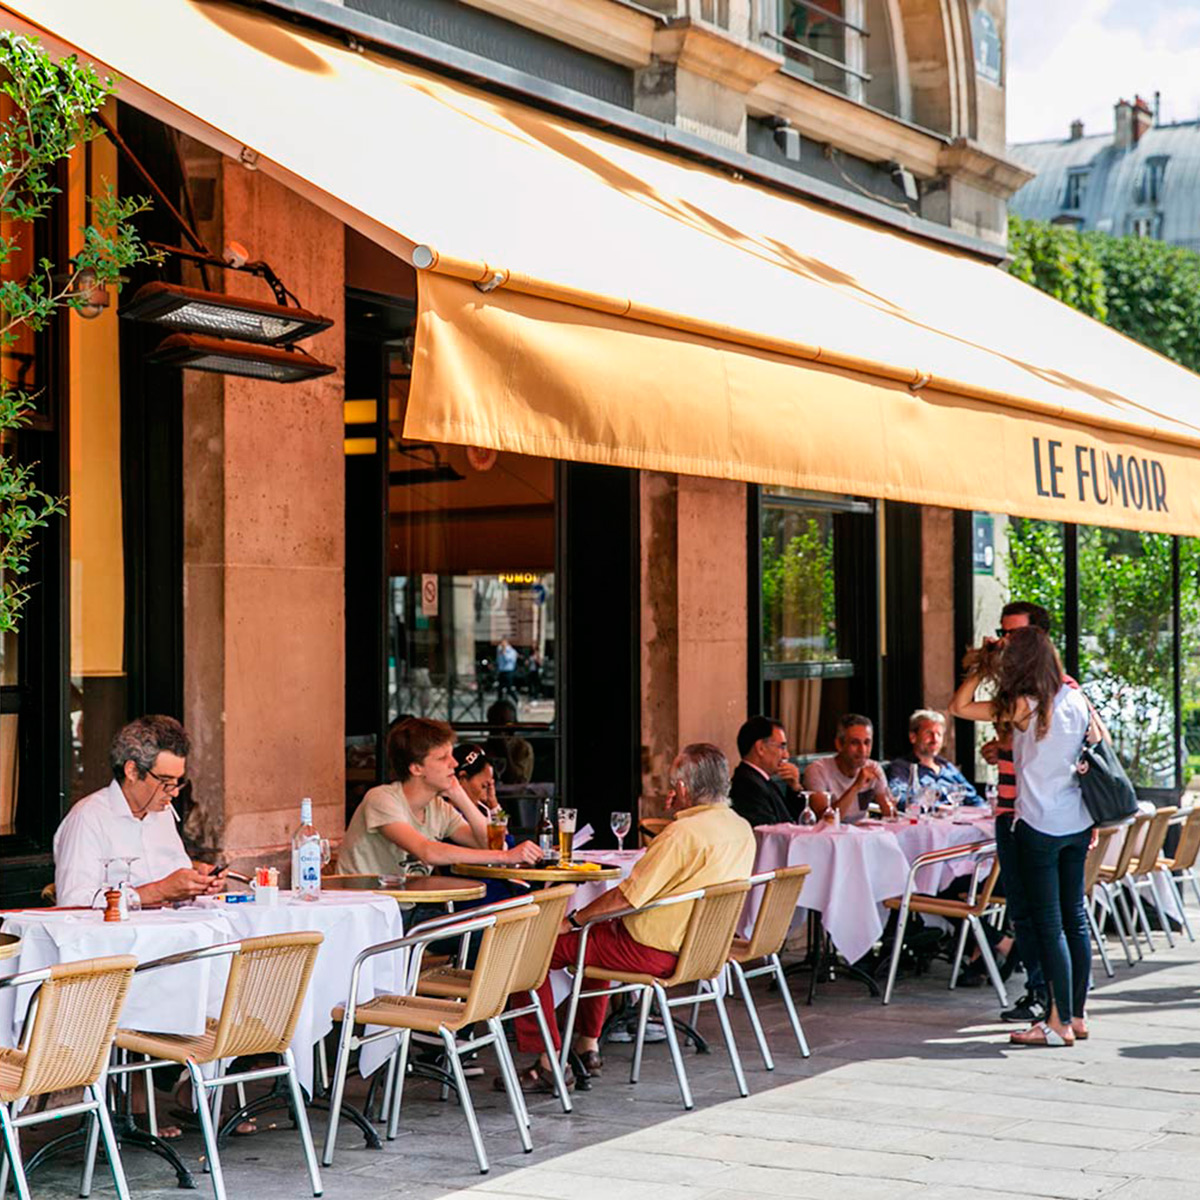 The 6 best terrace bars cafes and restaurants in paris for Open terrace restaurants